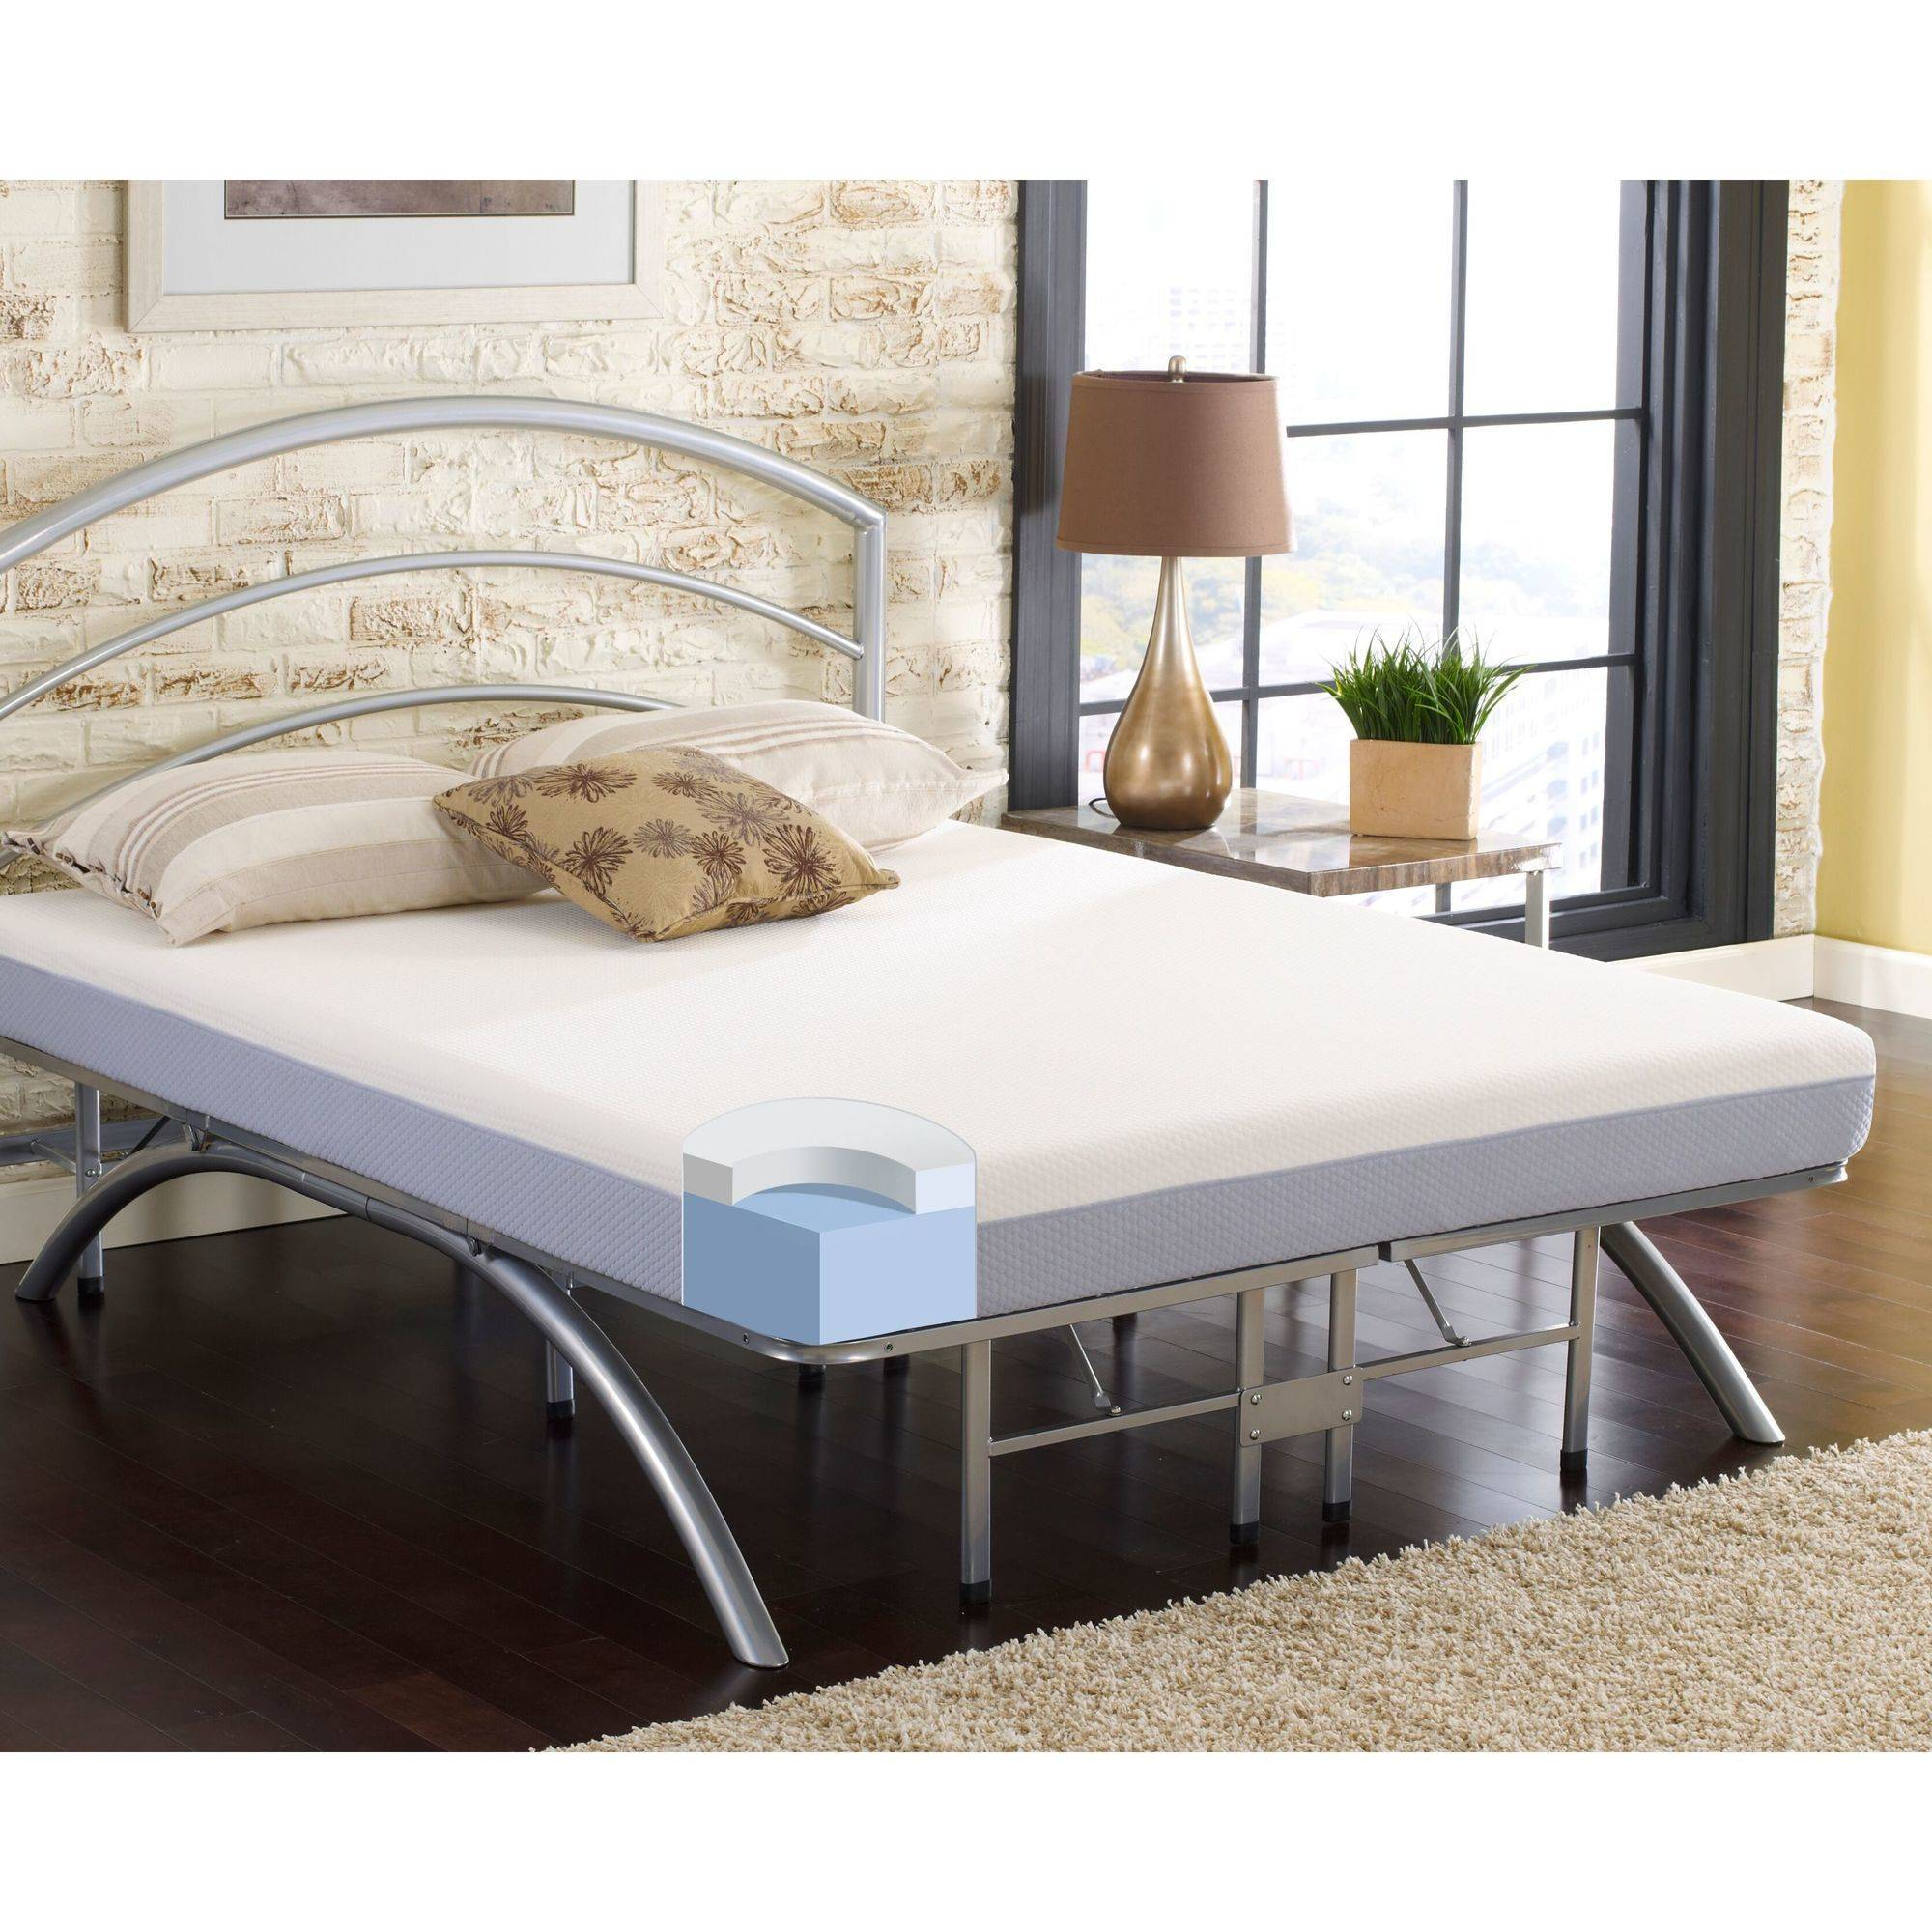 prices pedic number bed sleep dimensions mattress price tempurpedic king size frame sale tempur